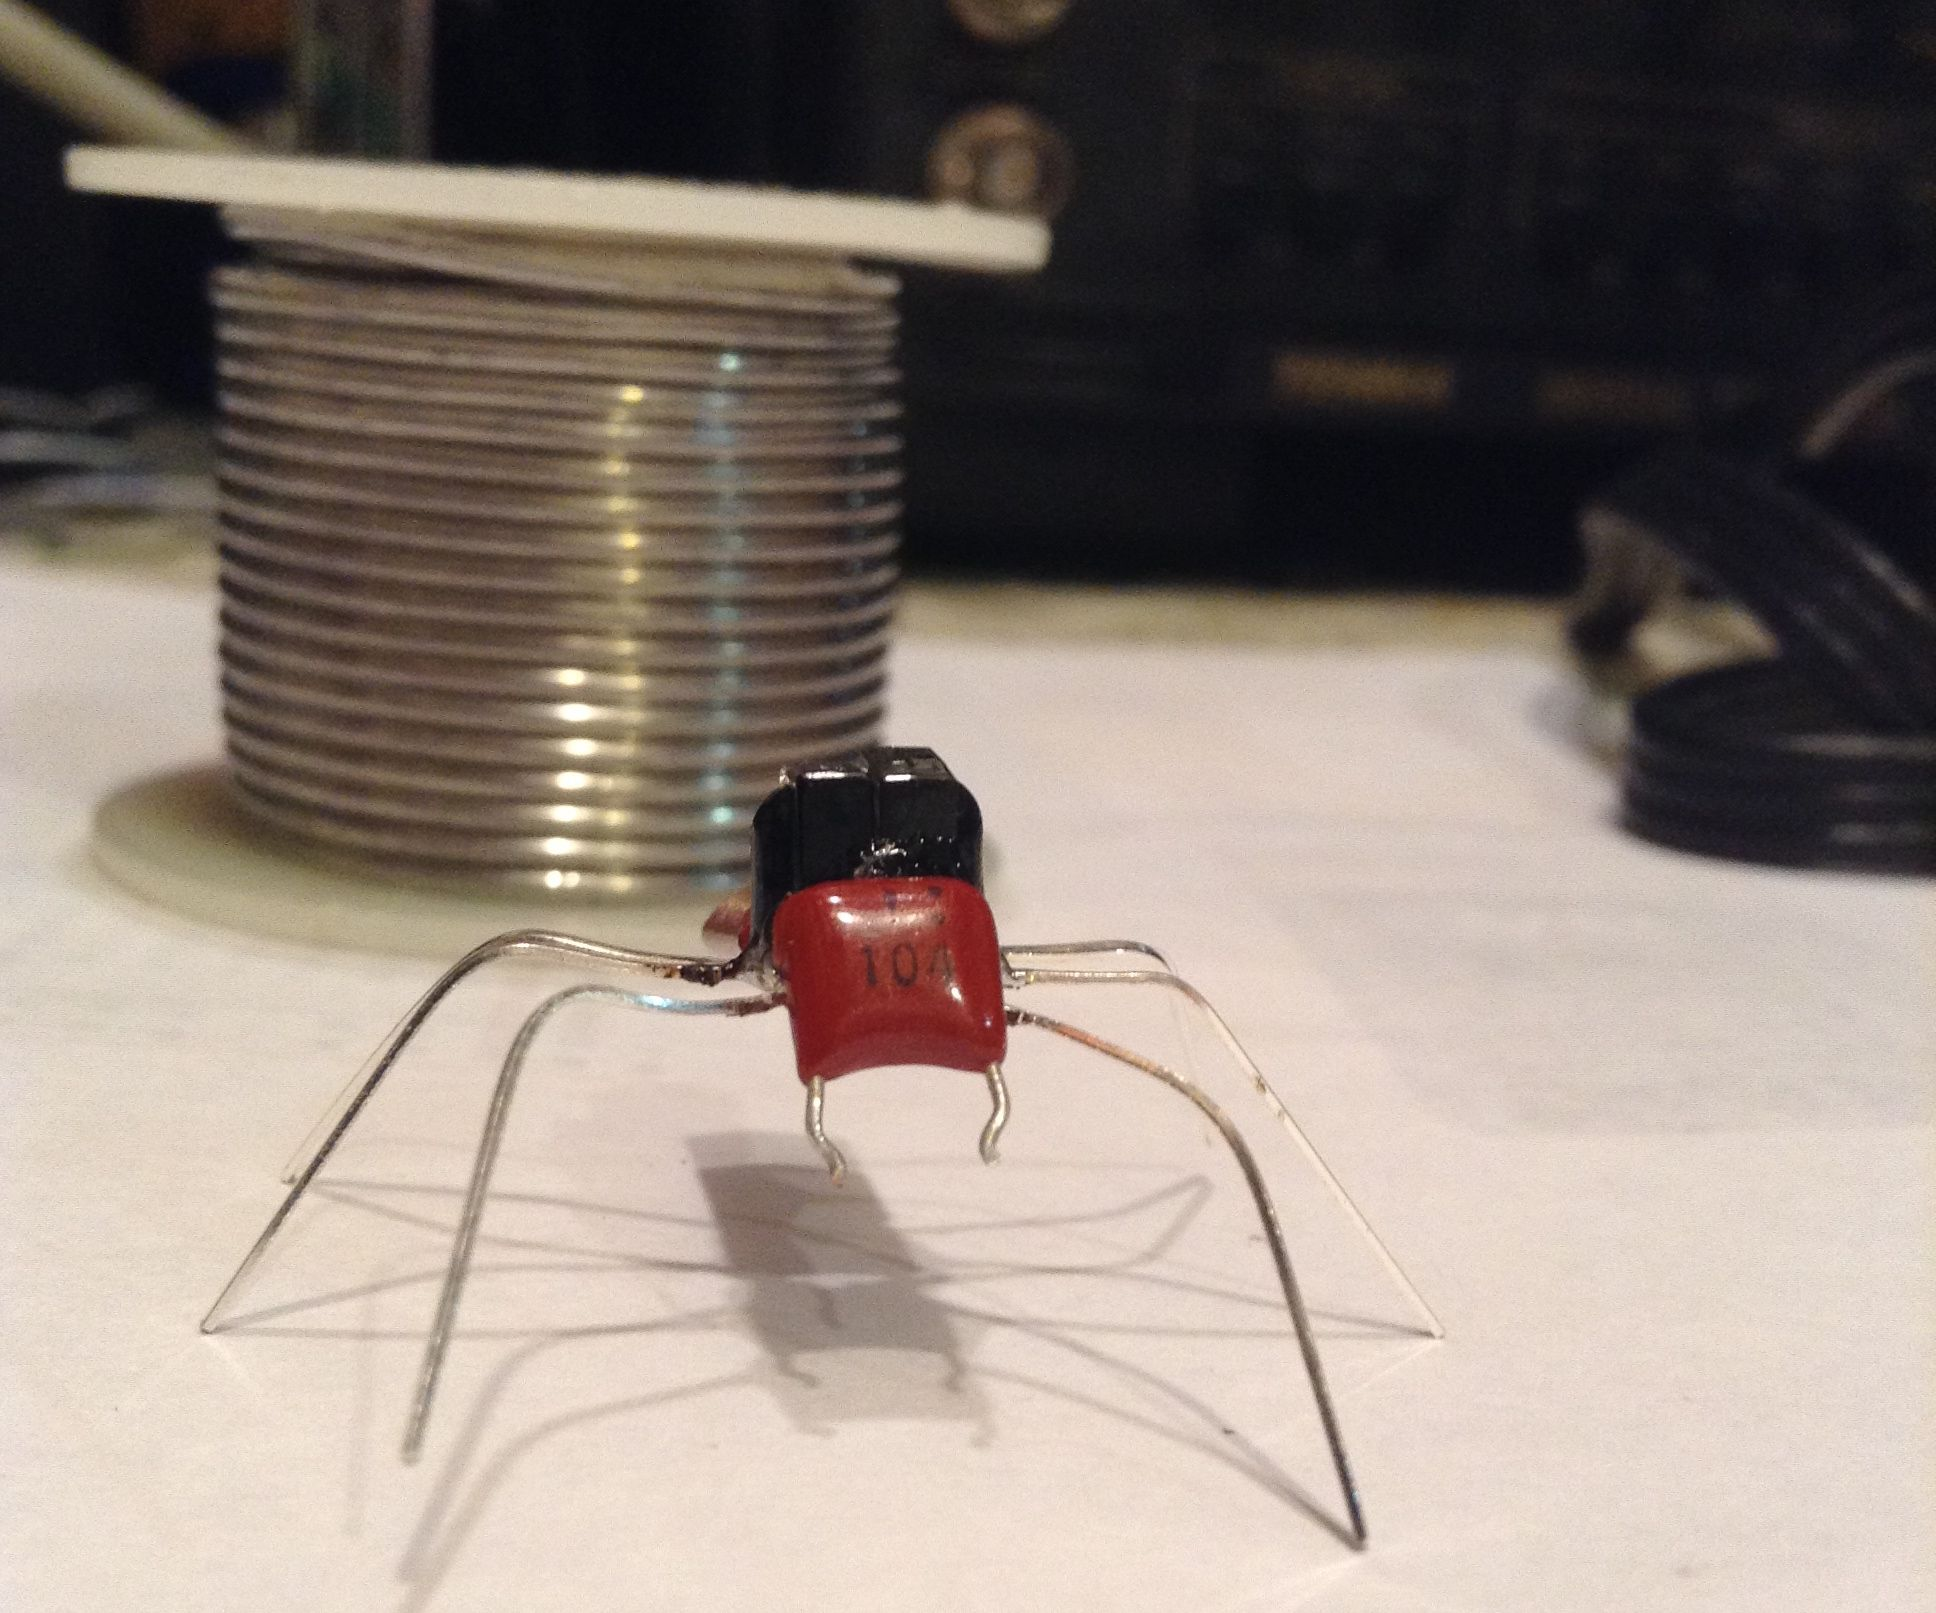 Electrical Component Bugs